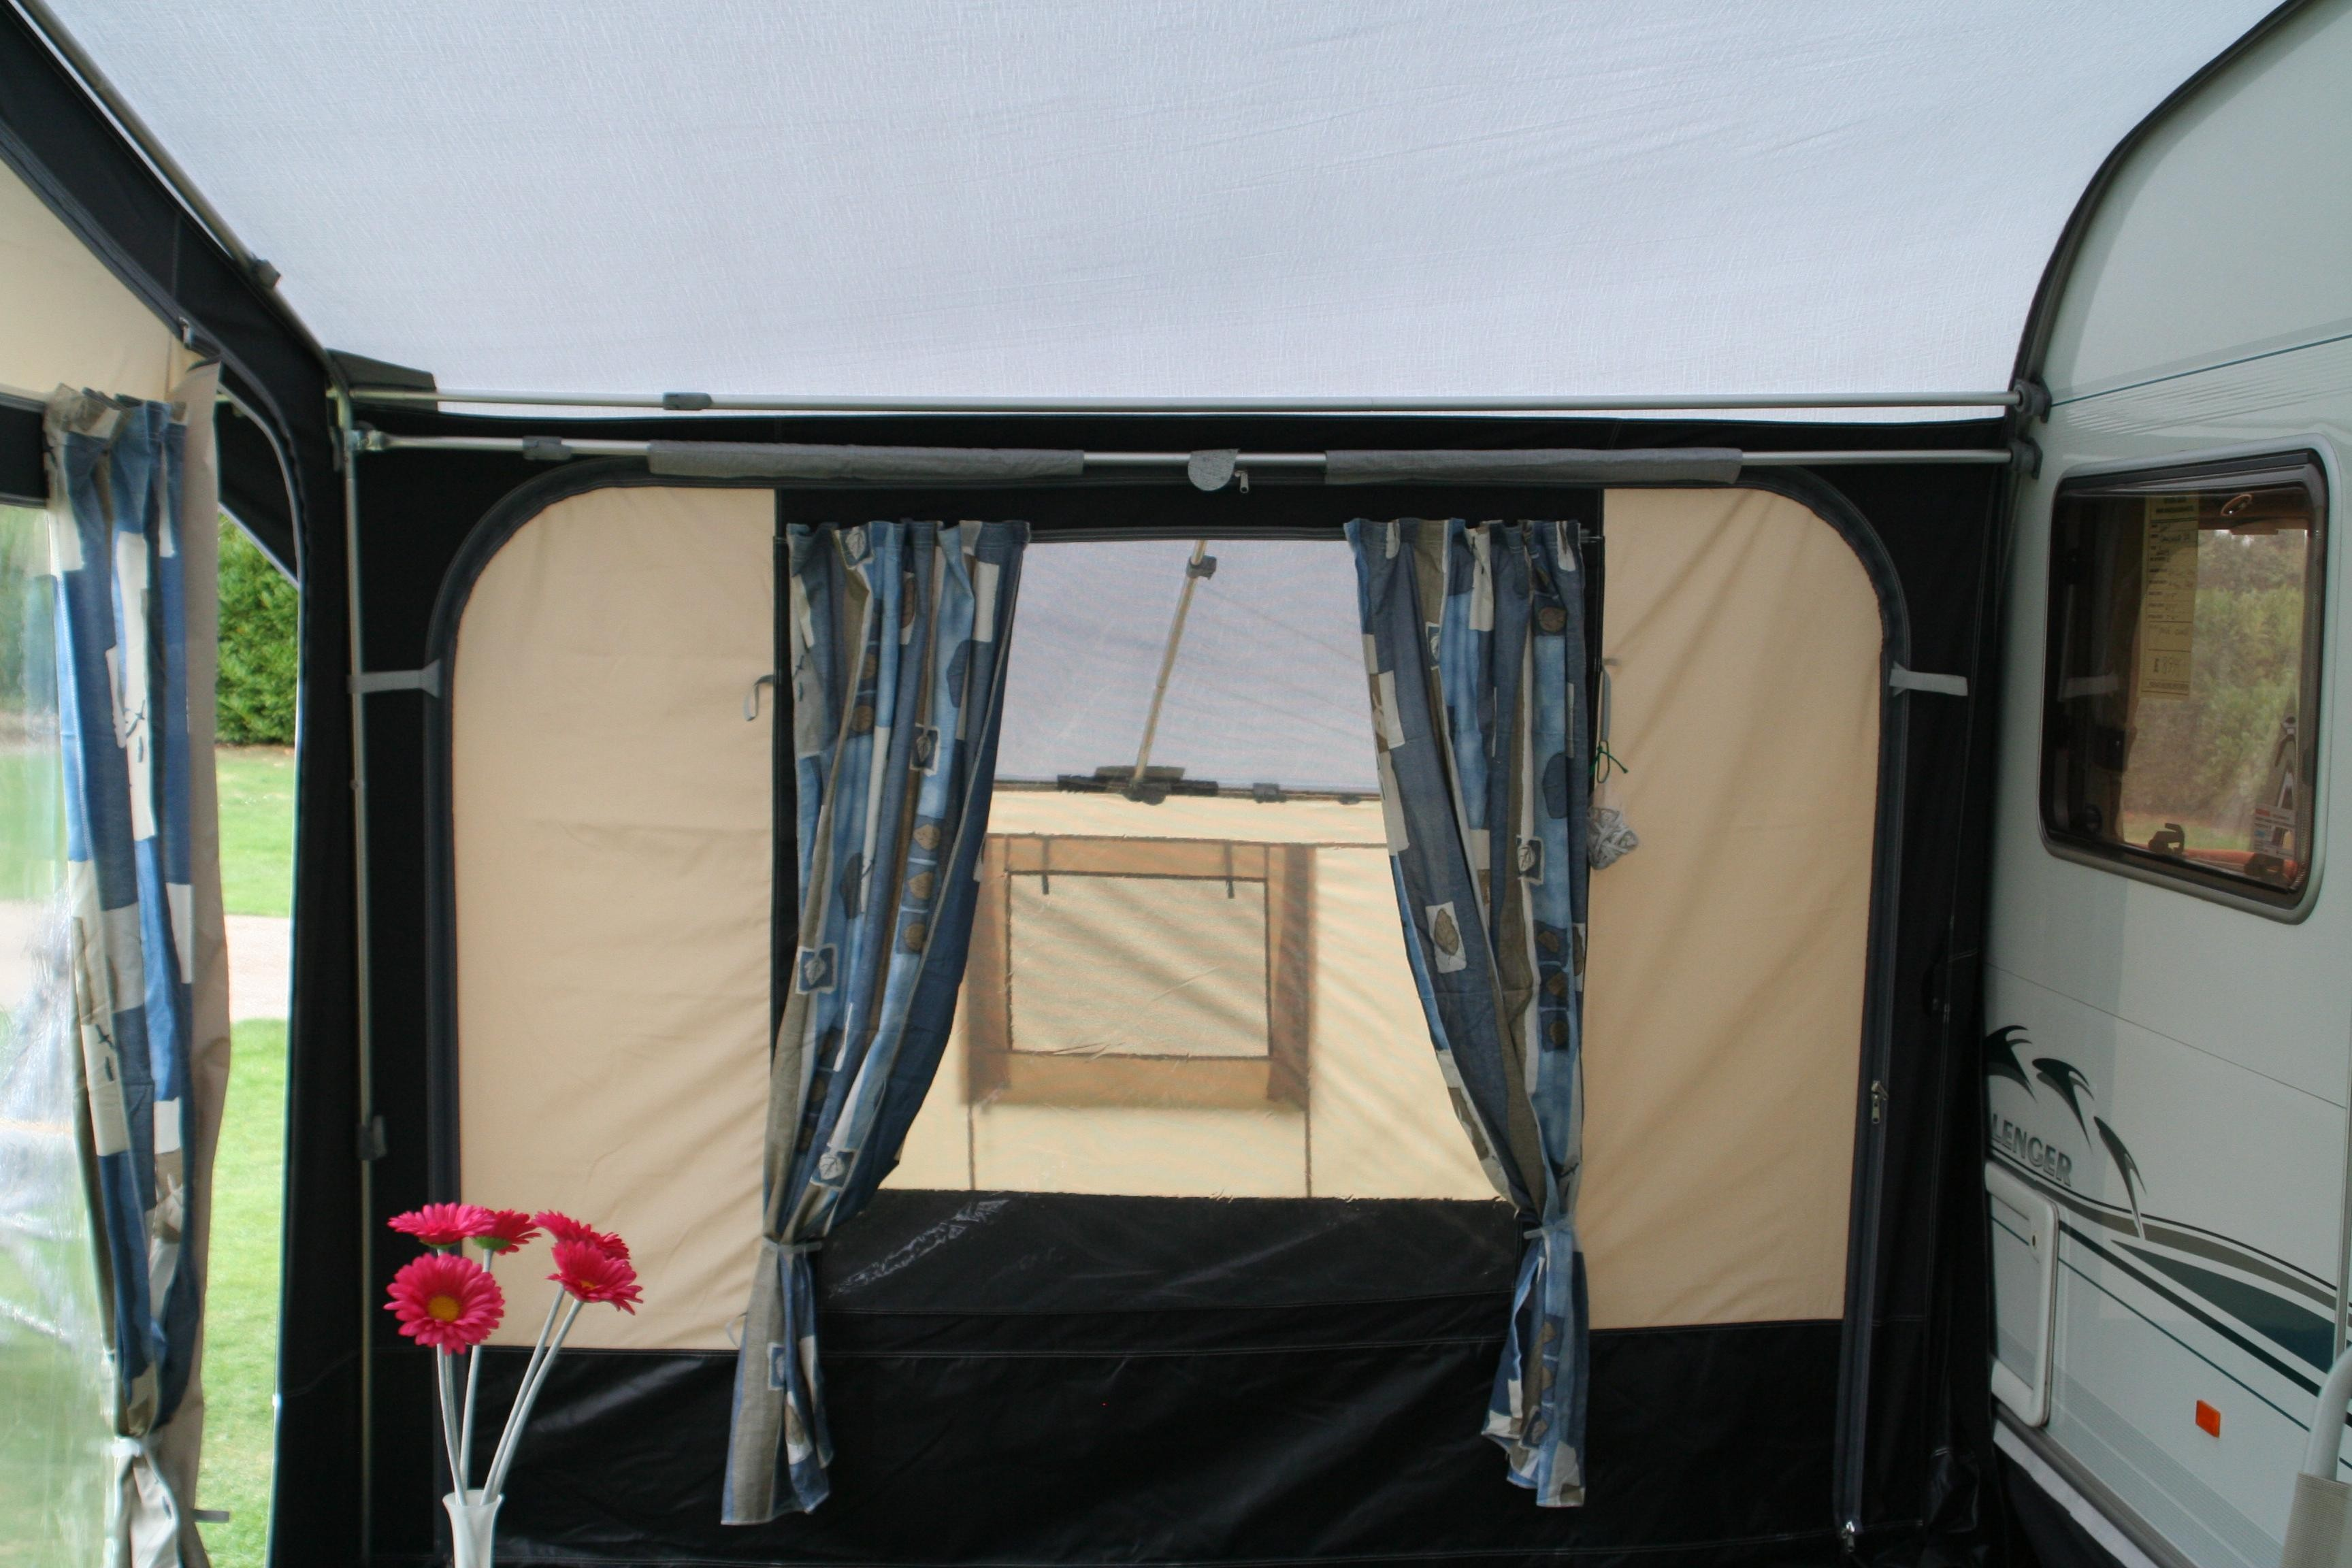 Kampa Carnival Awning 825 Size 8 From Kampa For 163 710 81